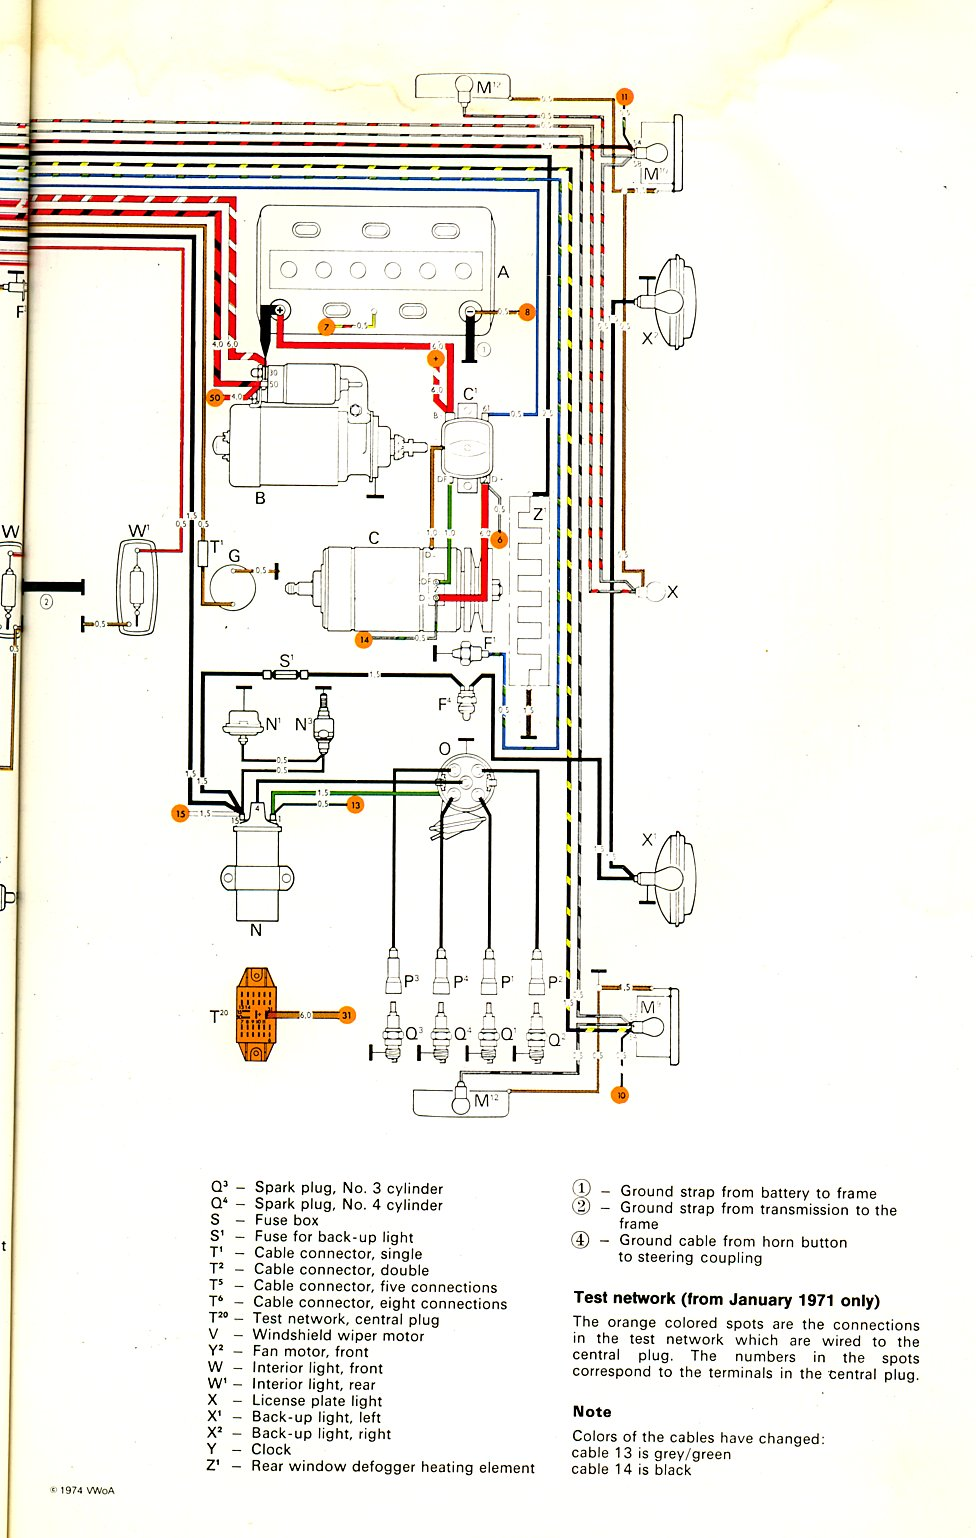 baybus_71b thesamba com type 2 wiring diagrams 1971 vw bus wiring diagram at gsmportal.co